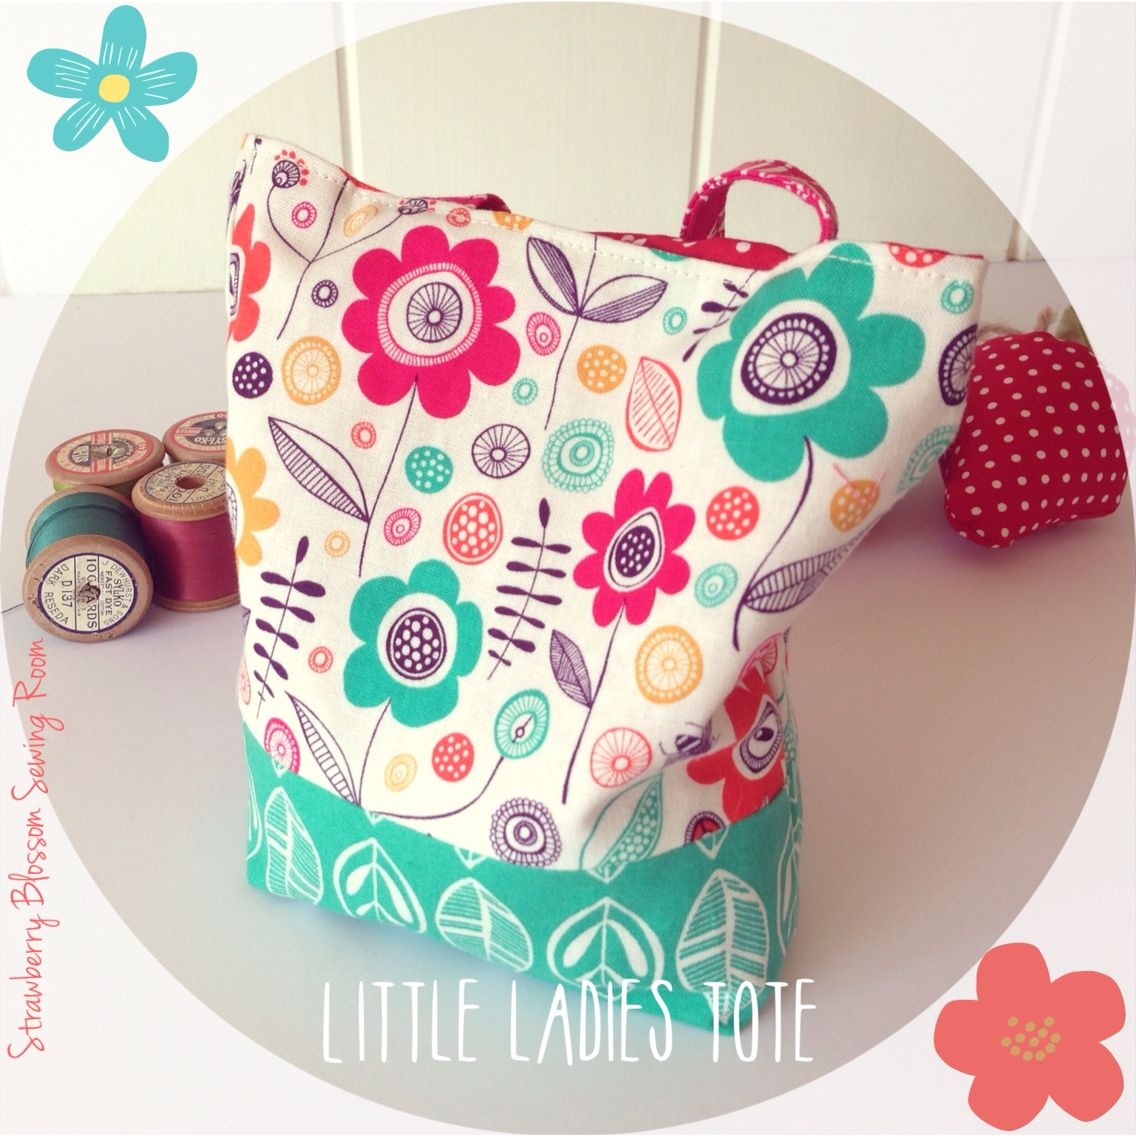 When I was a little girl I always had a little handbag in tow filled to the brim with all the essentials! Little girls love a pretty bag and these mini totes would see them stepping out in style. £7 each  (dimensions- 6x6 inches) #sew #sewing #handmade #sewingaddict #sewingproject #bag #totebag #flowers #handbag #girlsgift #gift  Www.facebook.com/strawberryblossomsewing